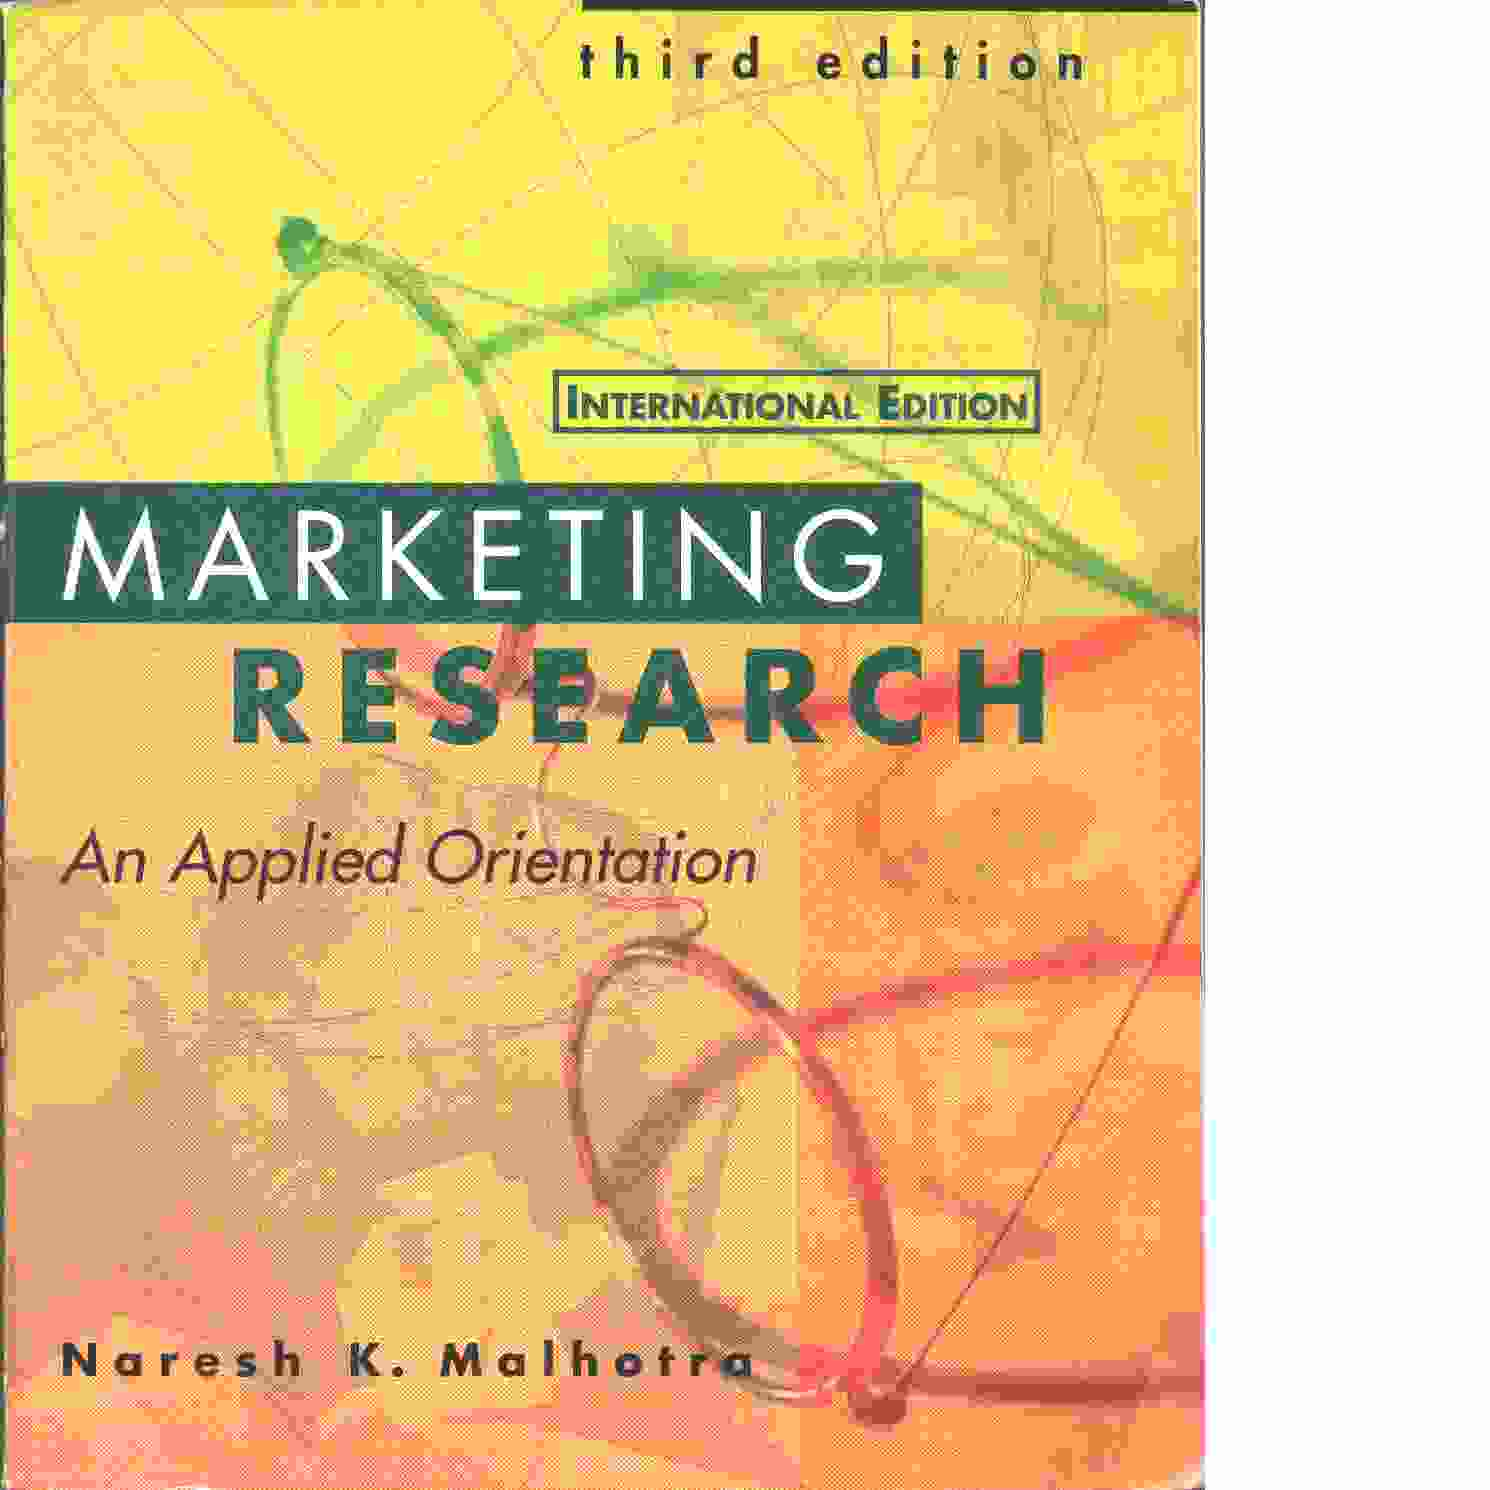 Marketing research : an applied orientation - Malhotra, Naresh K.